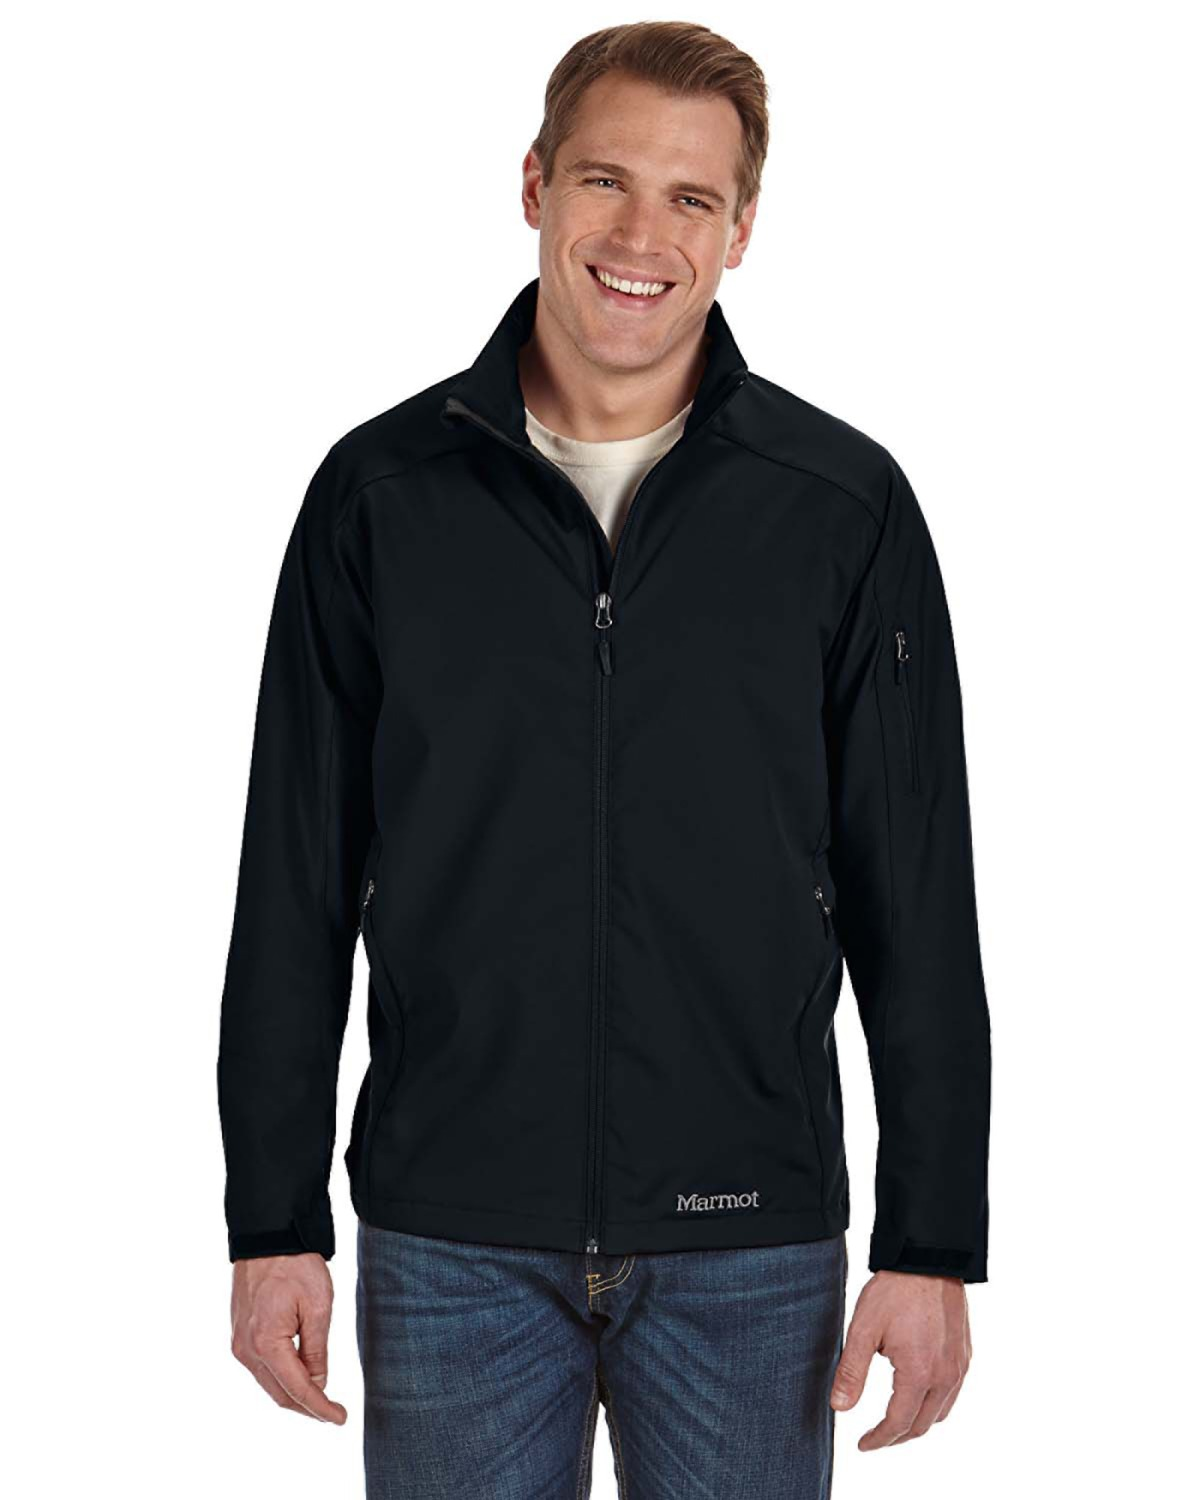 Marmot - 94410, Men's Approach Jacket - Logo Masters International